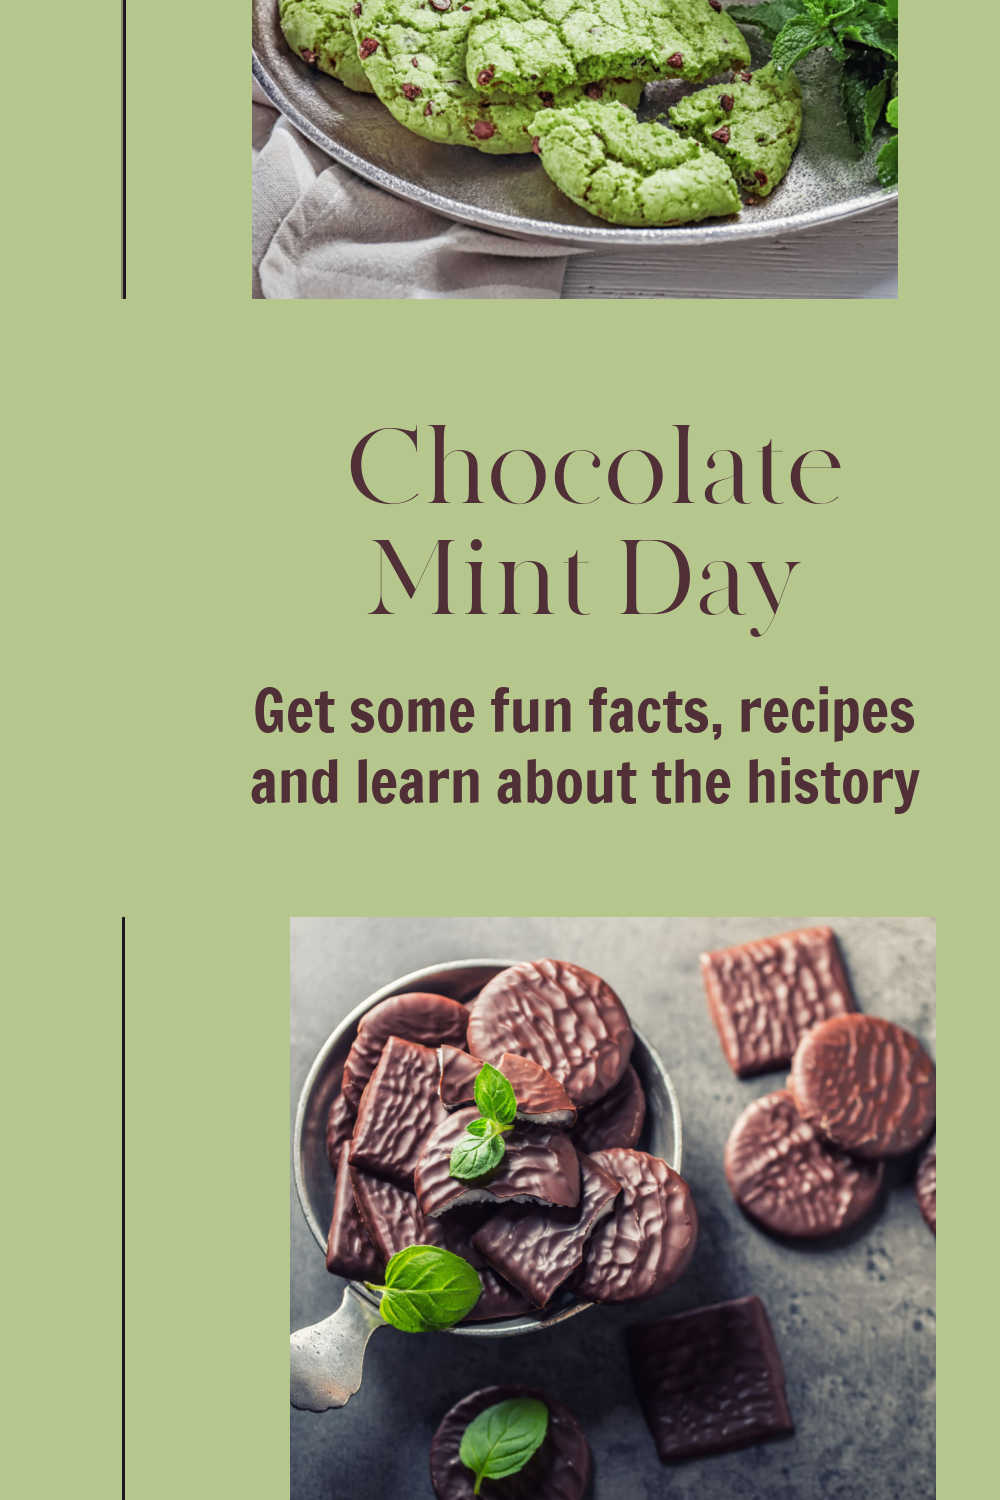 chocolate mints and mint chocolate cookies with words reading Chocolate mint day - get some fun facts and recipes and learn about the history.